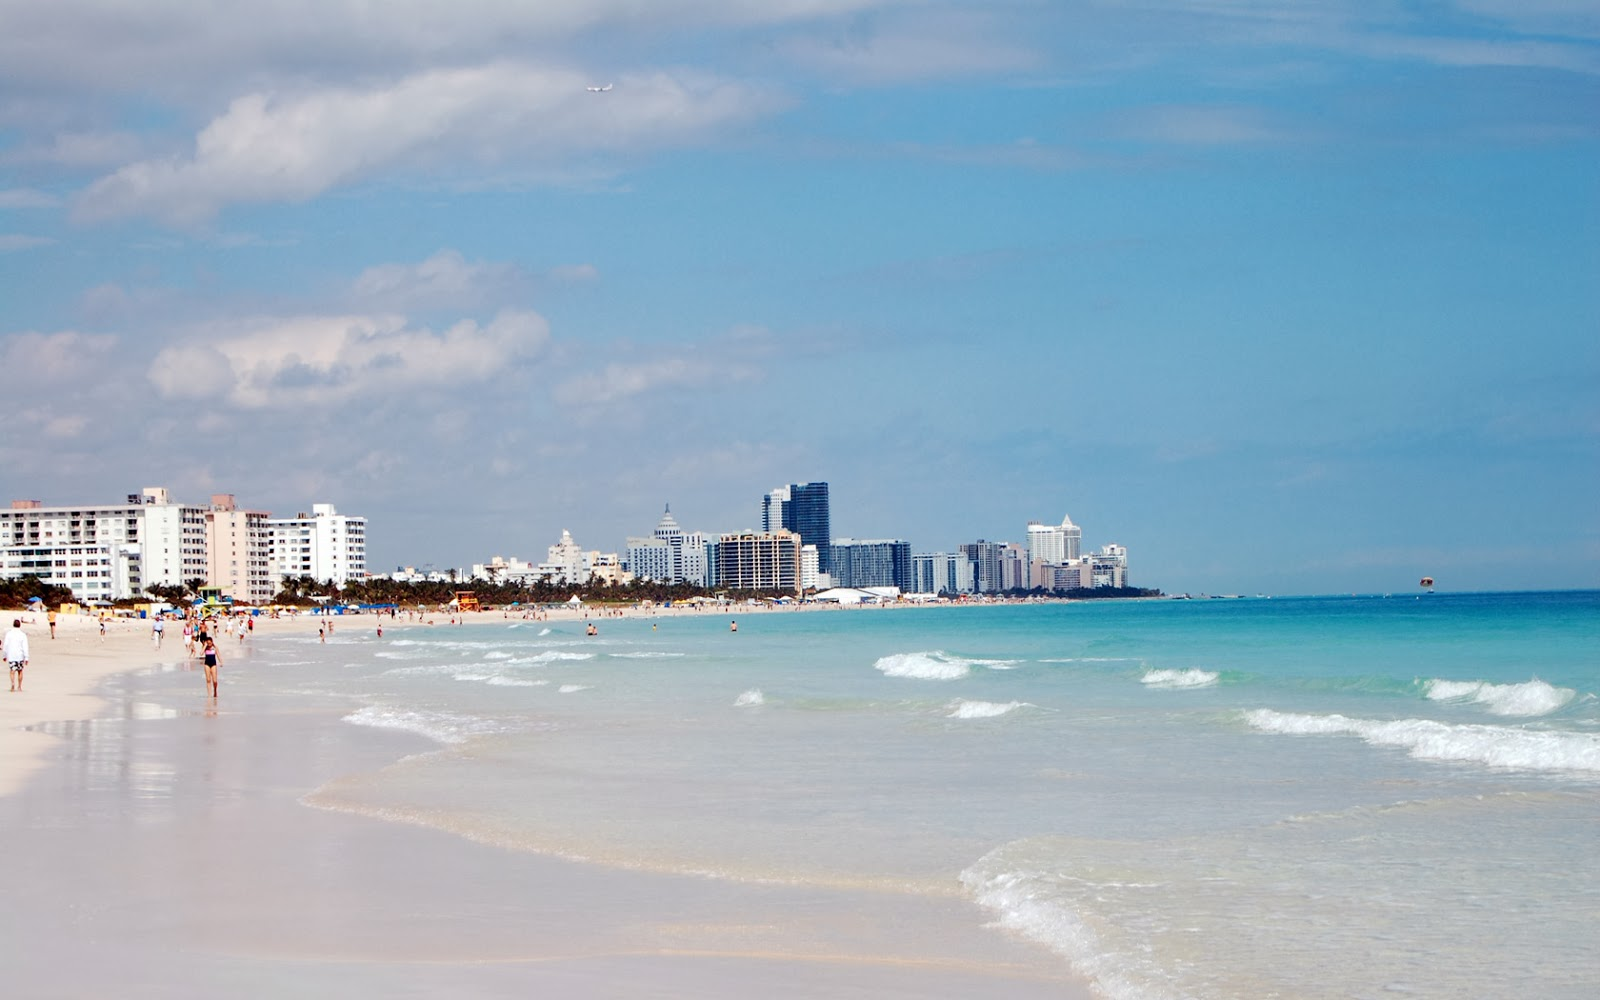 City miami florida city view city wallpaper south beach miami